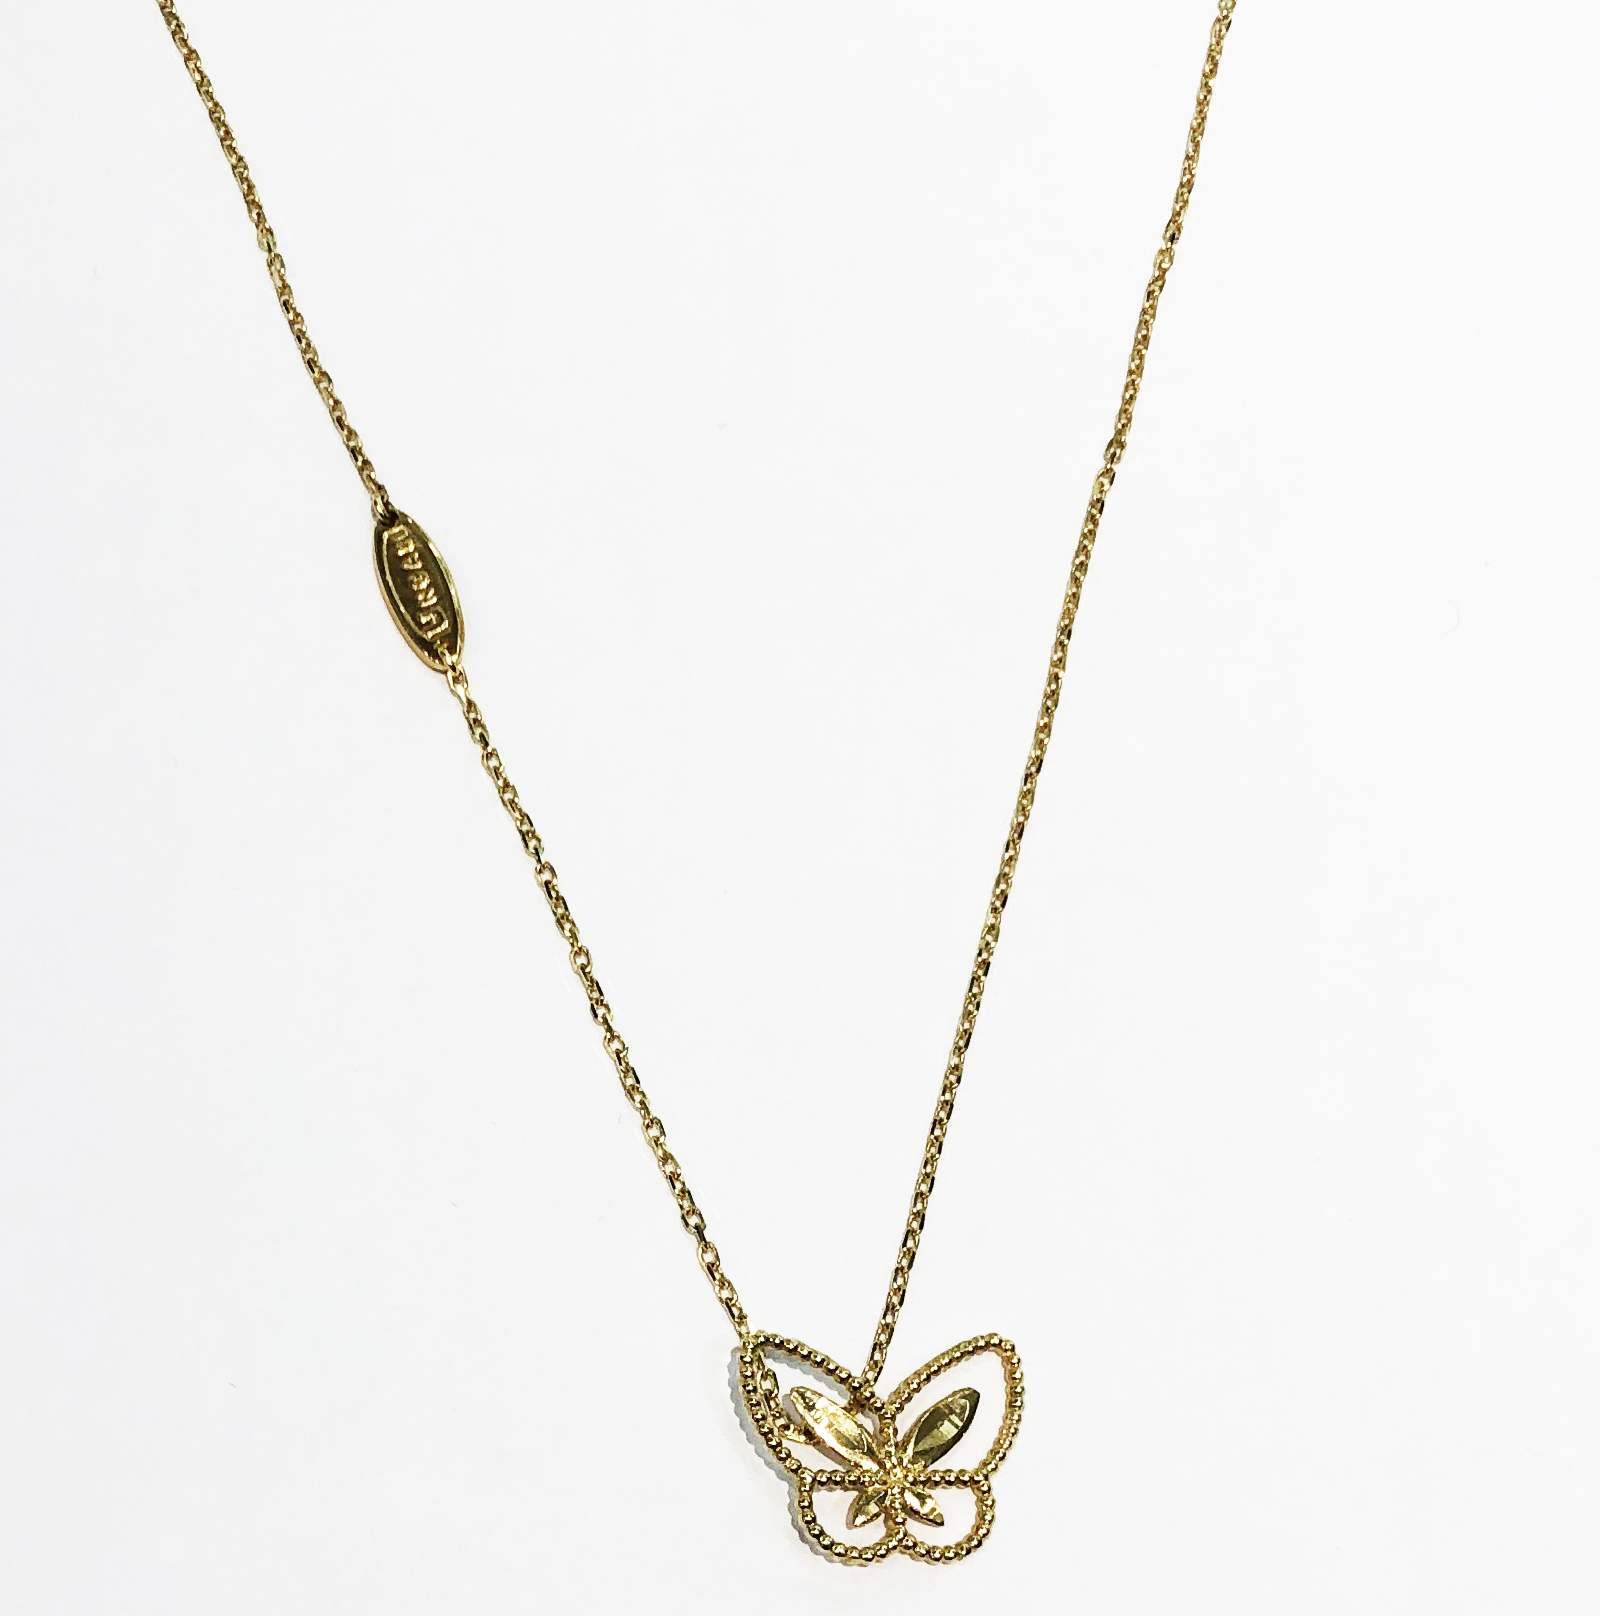 Lorenzo Ungari NECKLACE YELLOW GOLD, CL S 9302